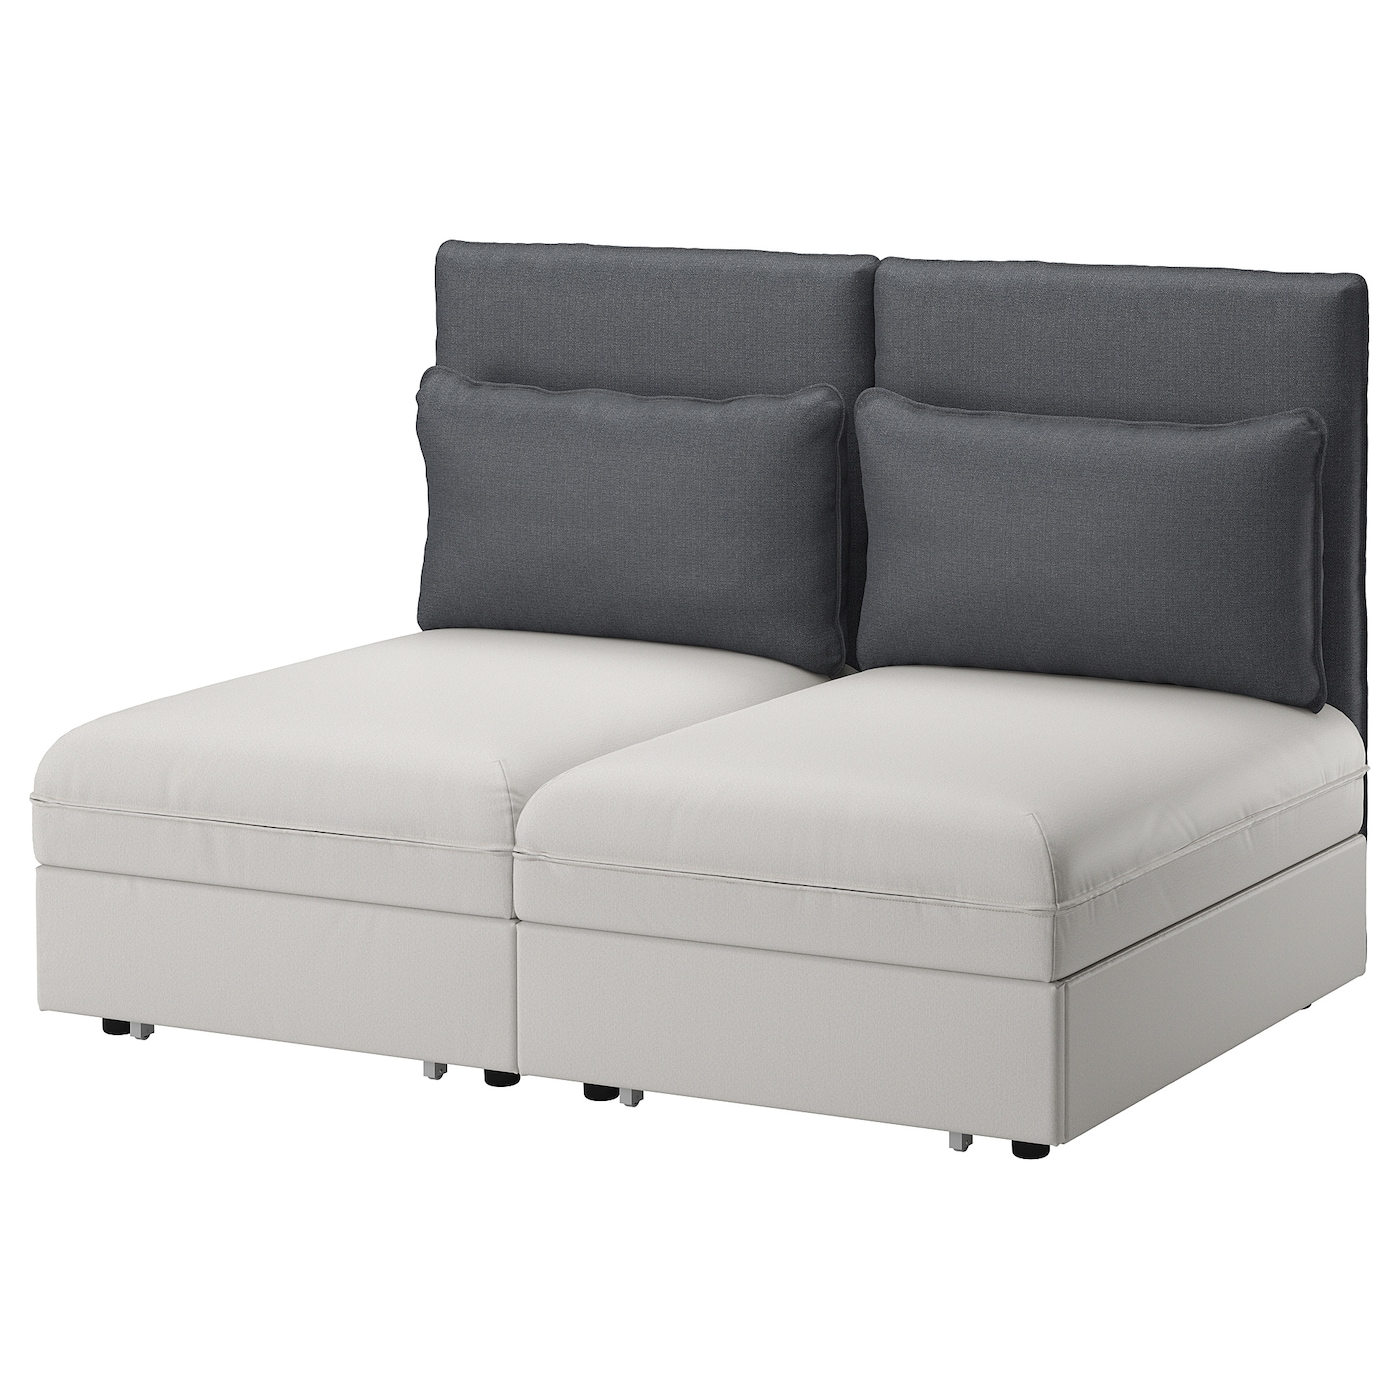 Vallentuna 2 Seat Sofa With Bed Ramna Light Grey Hillared Dark Grey Ikea